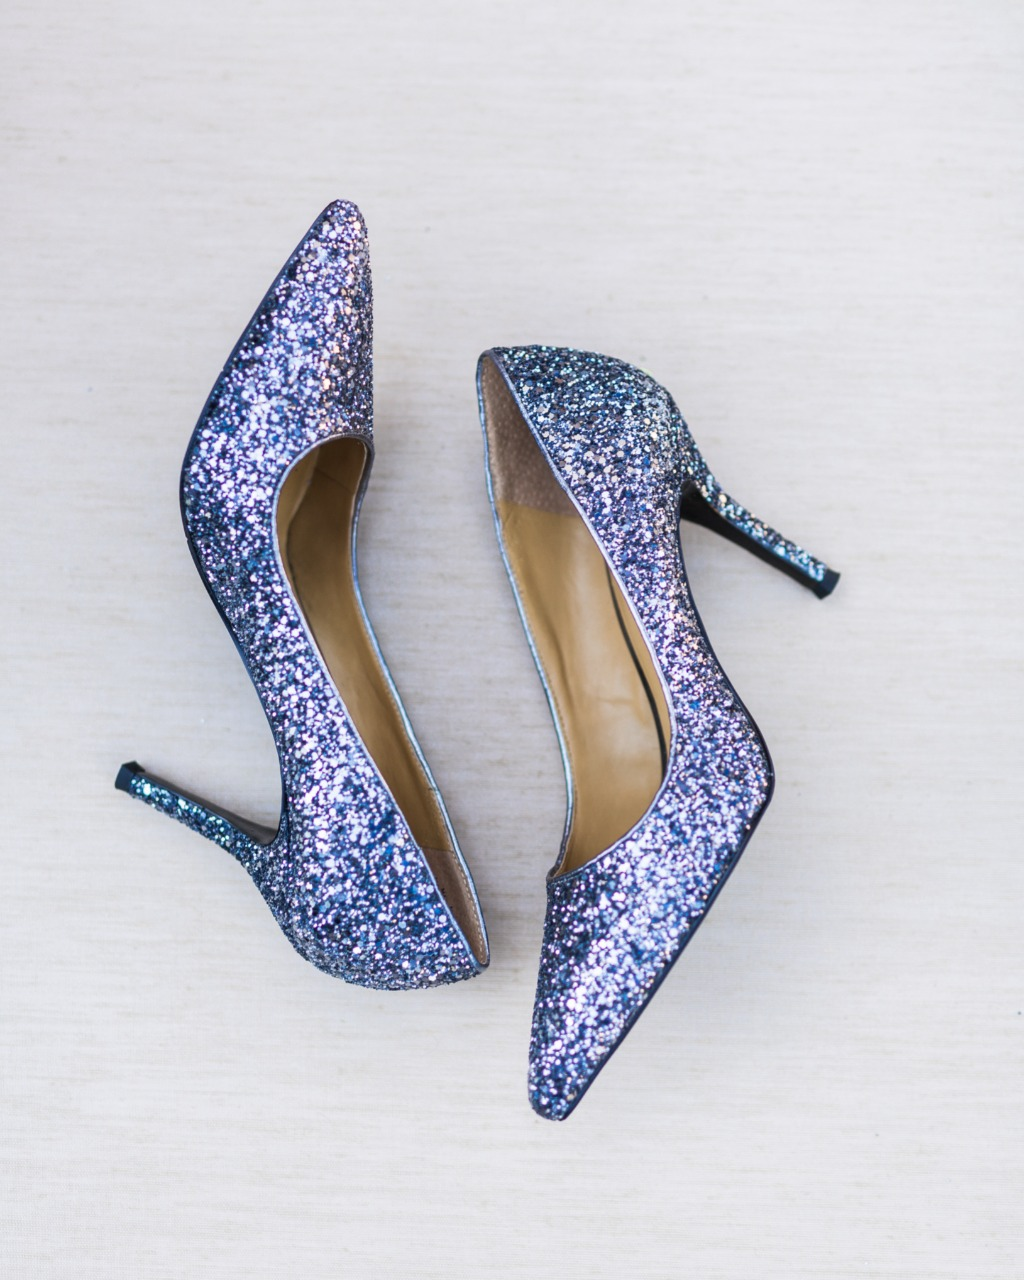 Cinderella is proof that a pair of shoes can change your life!